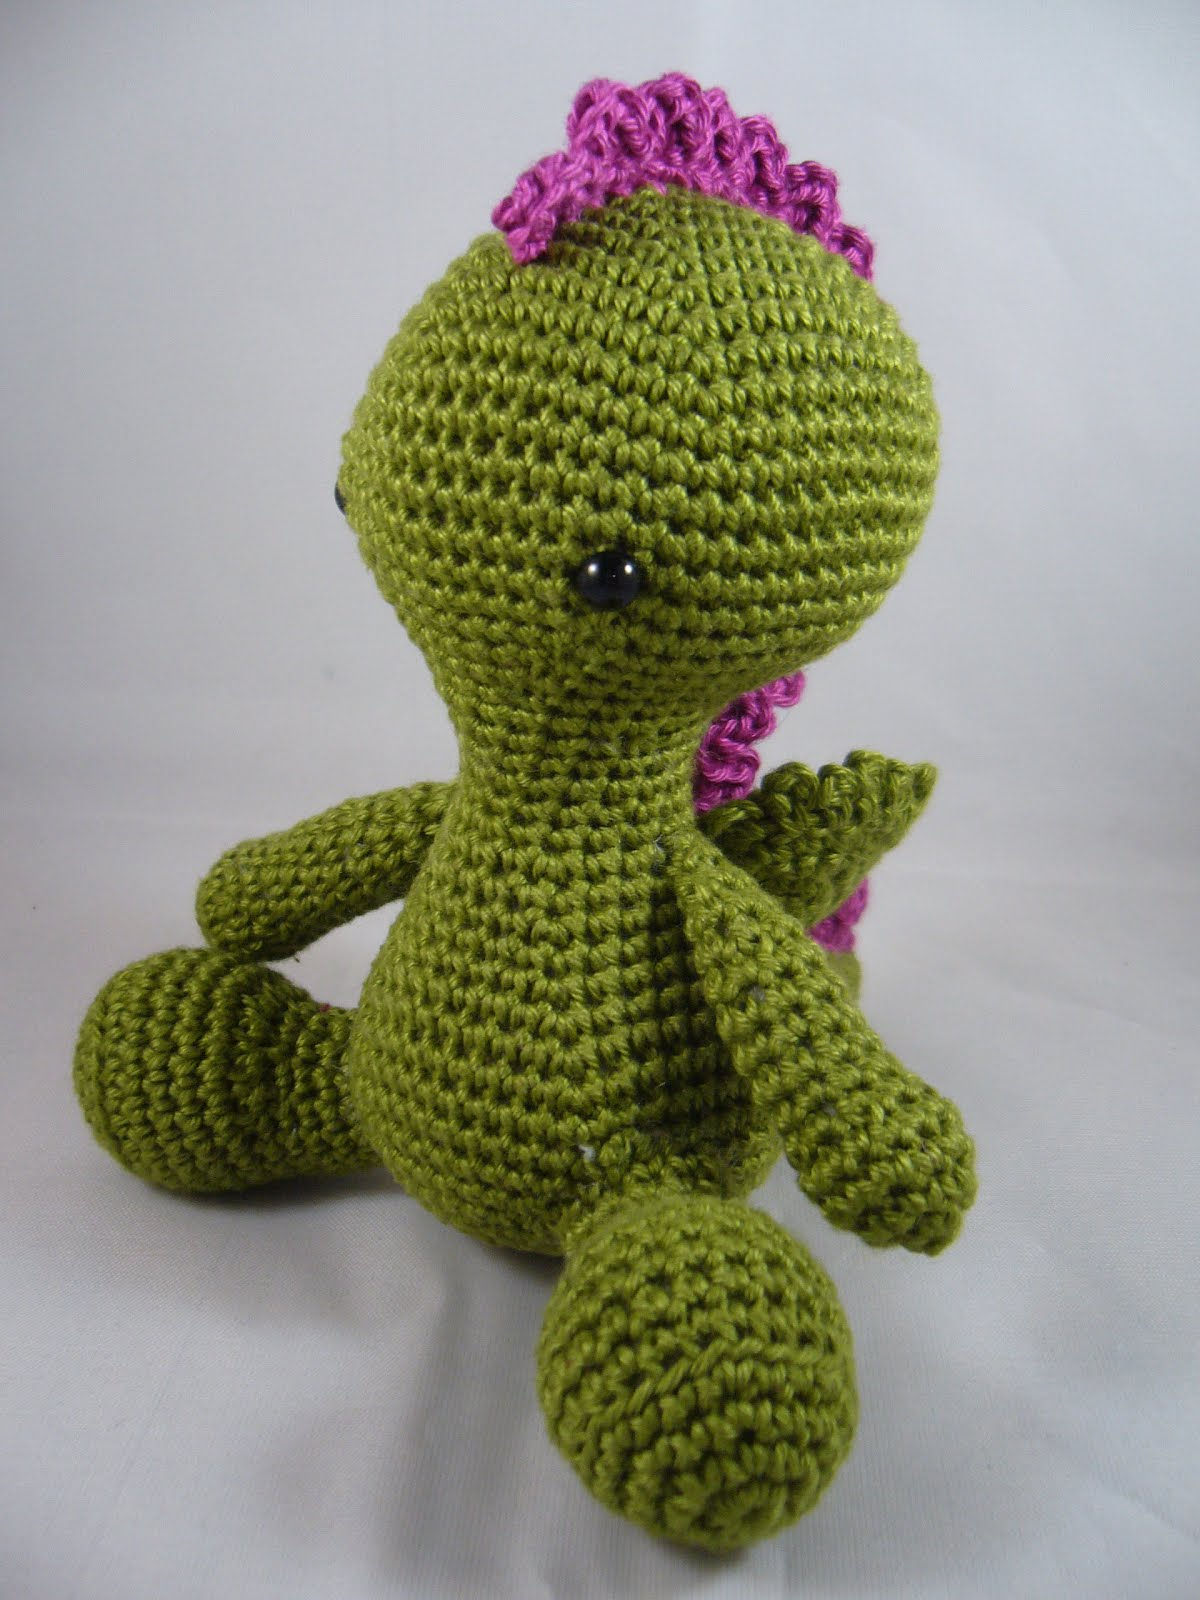 kamadesign - confessions of a crafter: Amigurumi dragon/alien